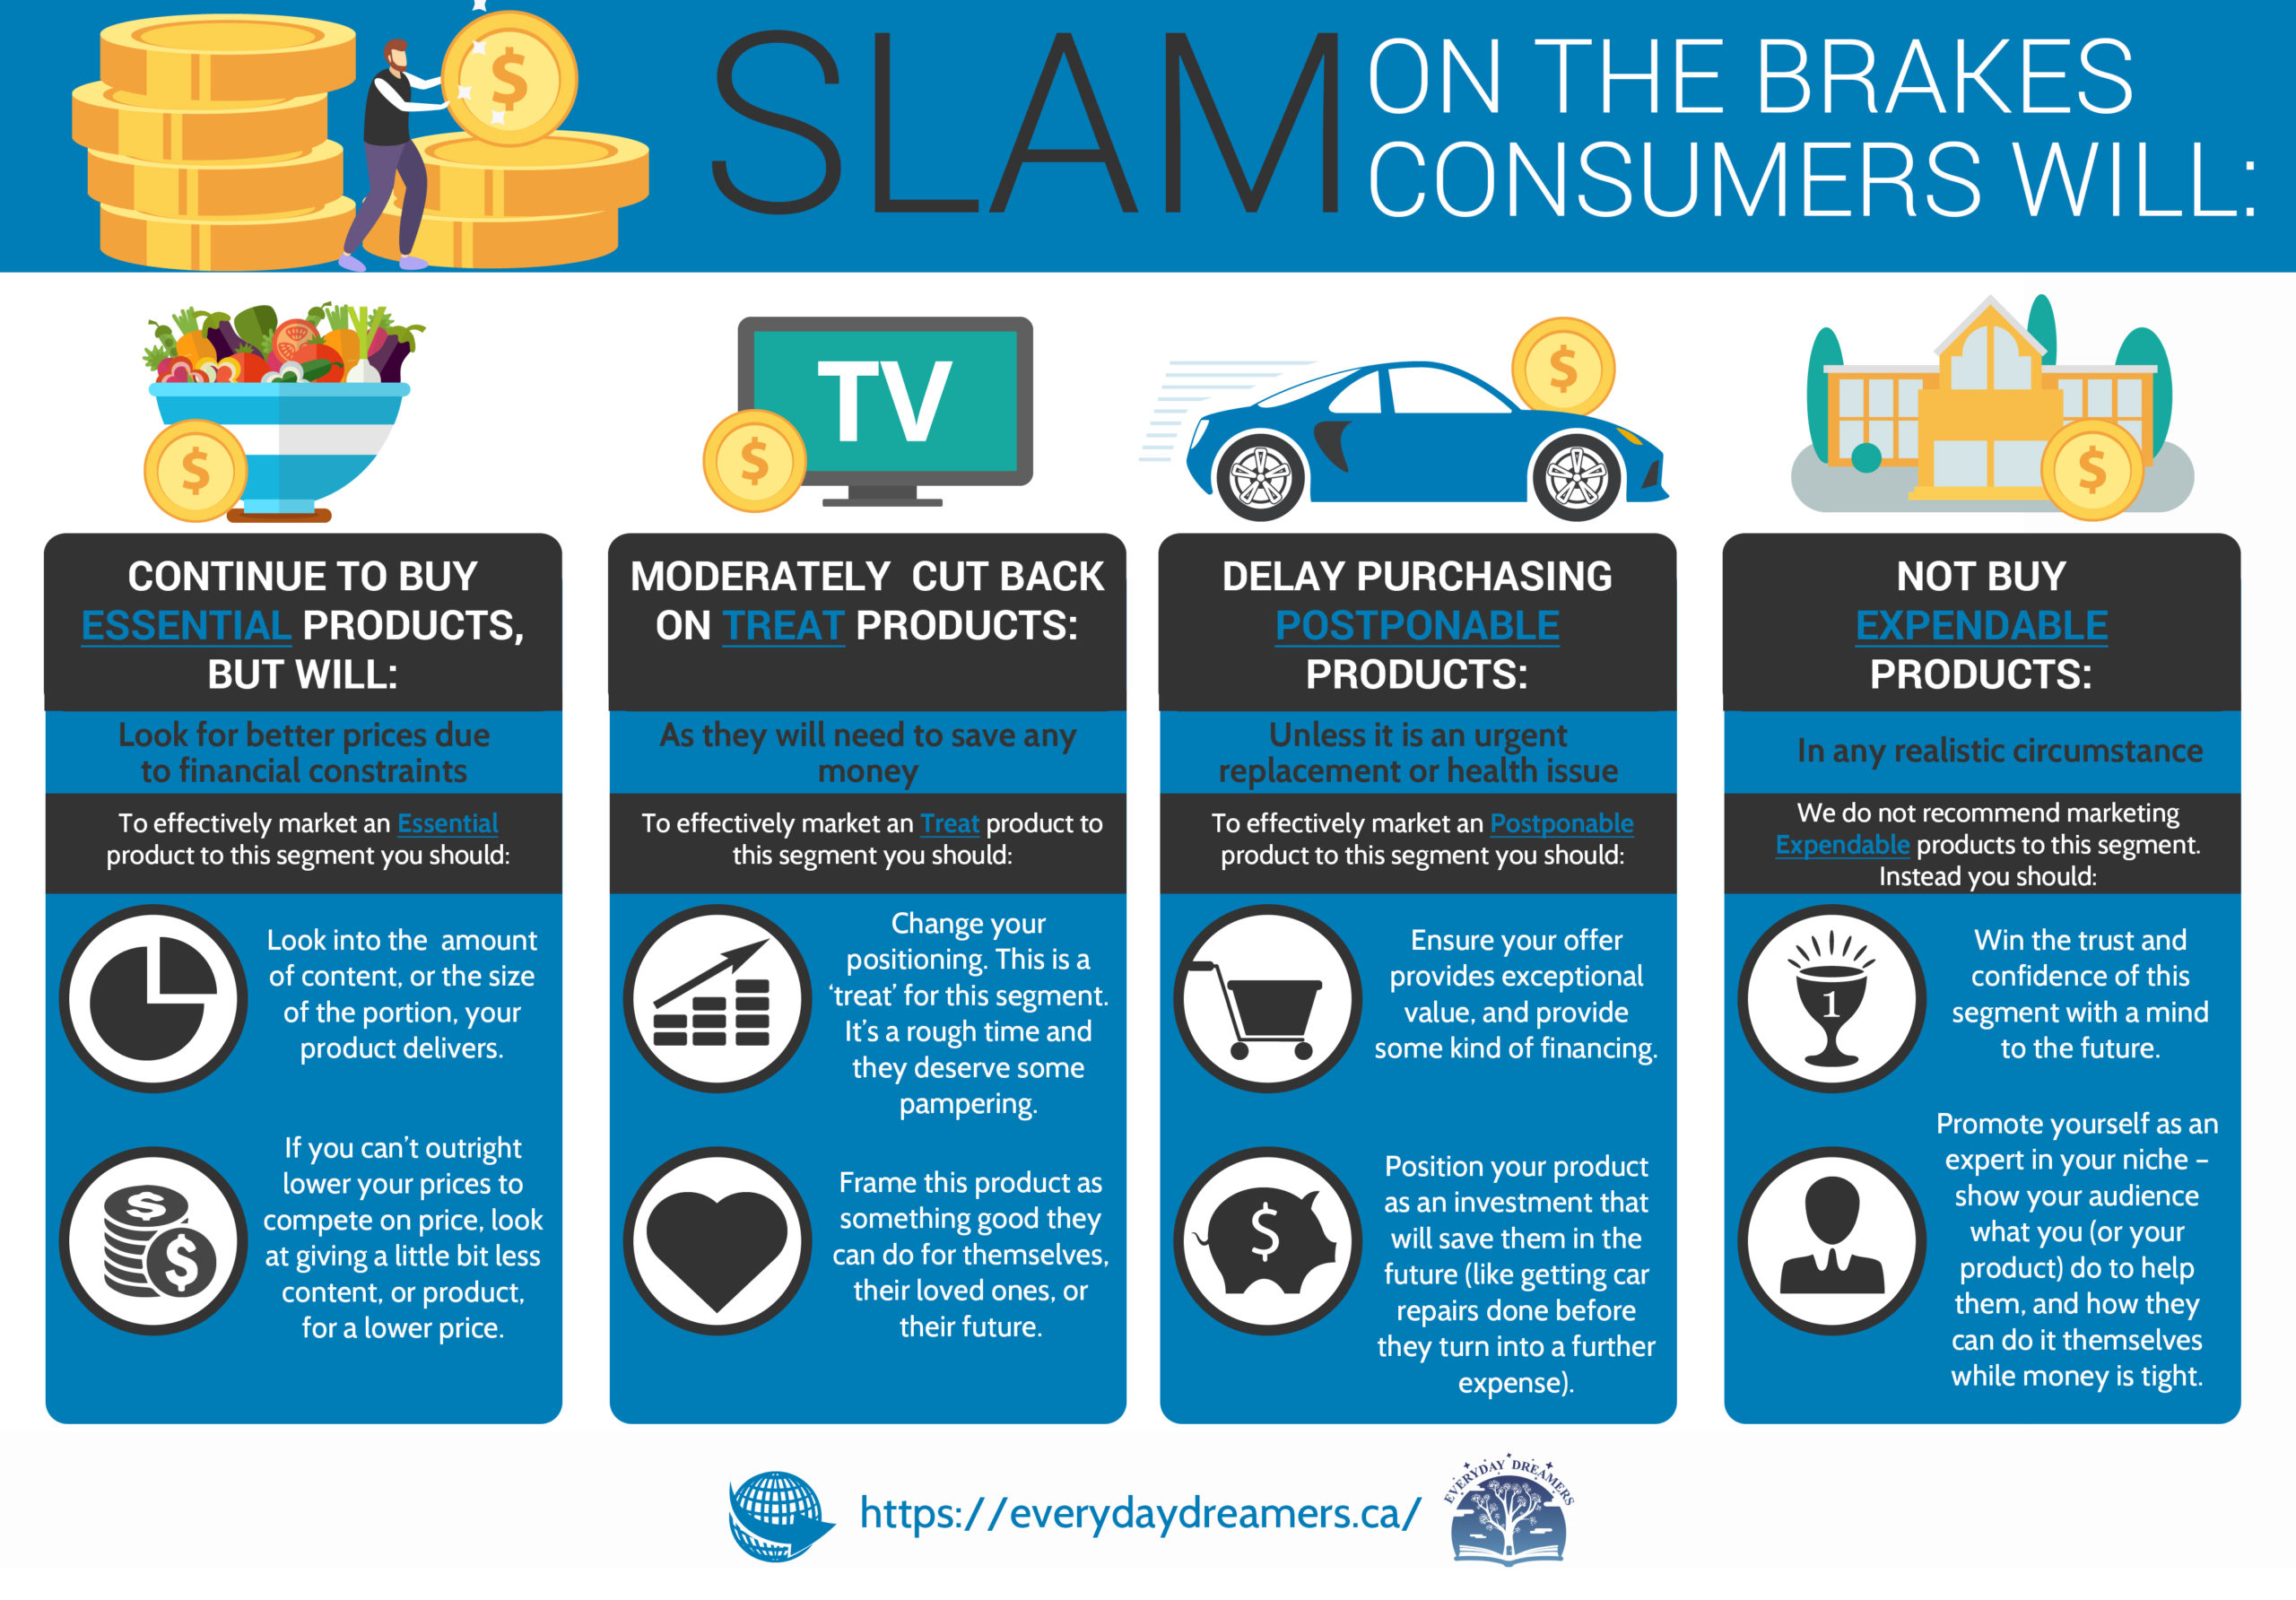 Slam on the brakes consumers - Everyday Dreamers